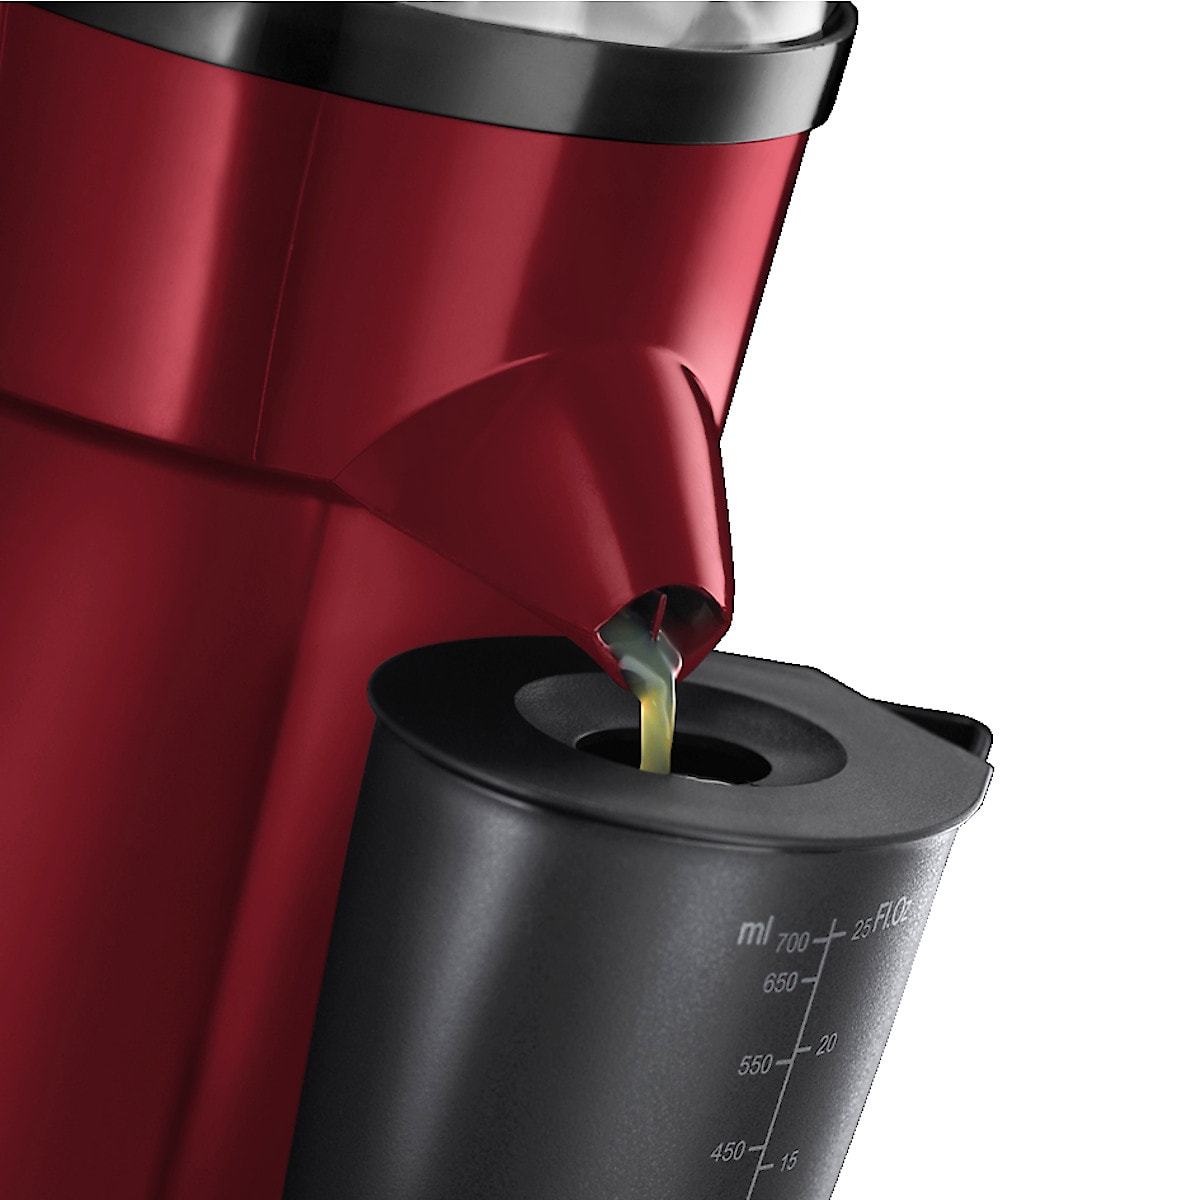 Russell Hobbs 20360 Centrifugal Juicer